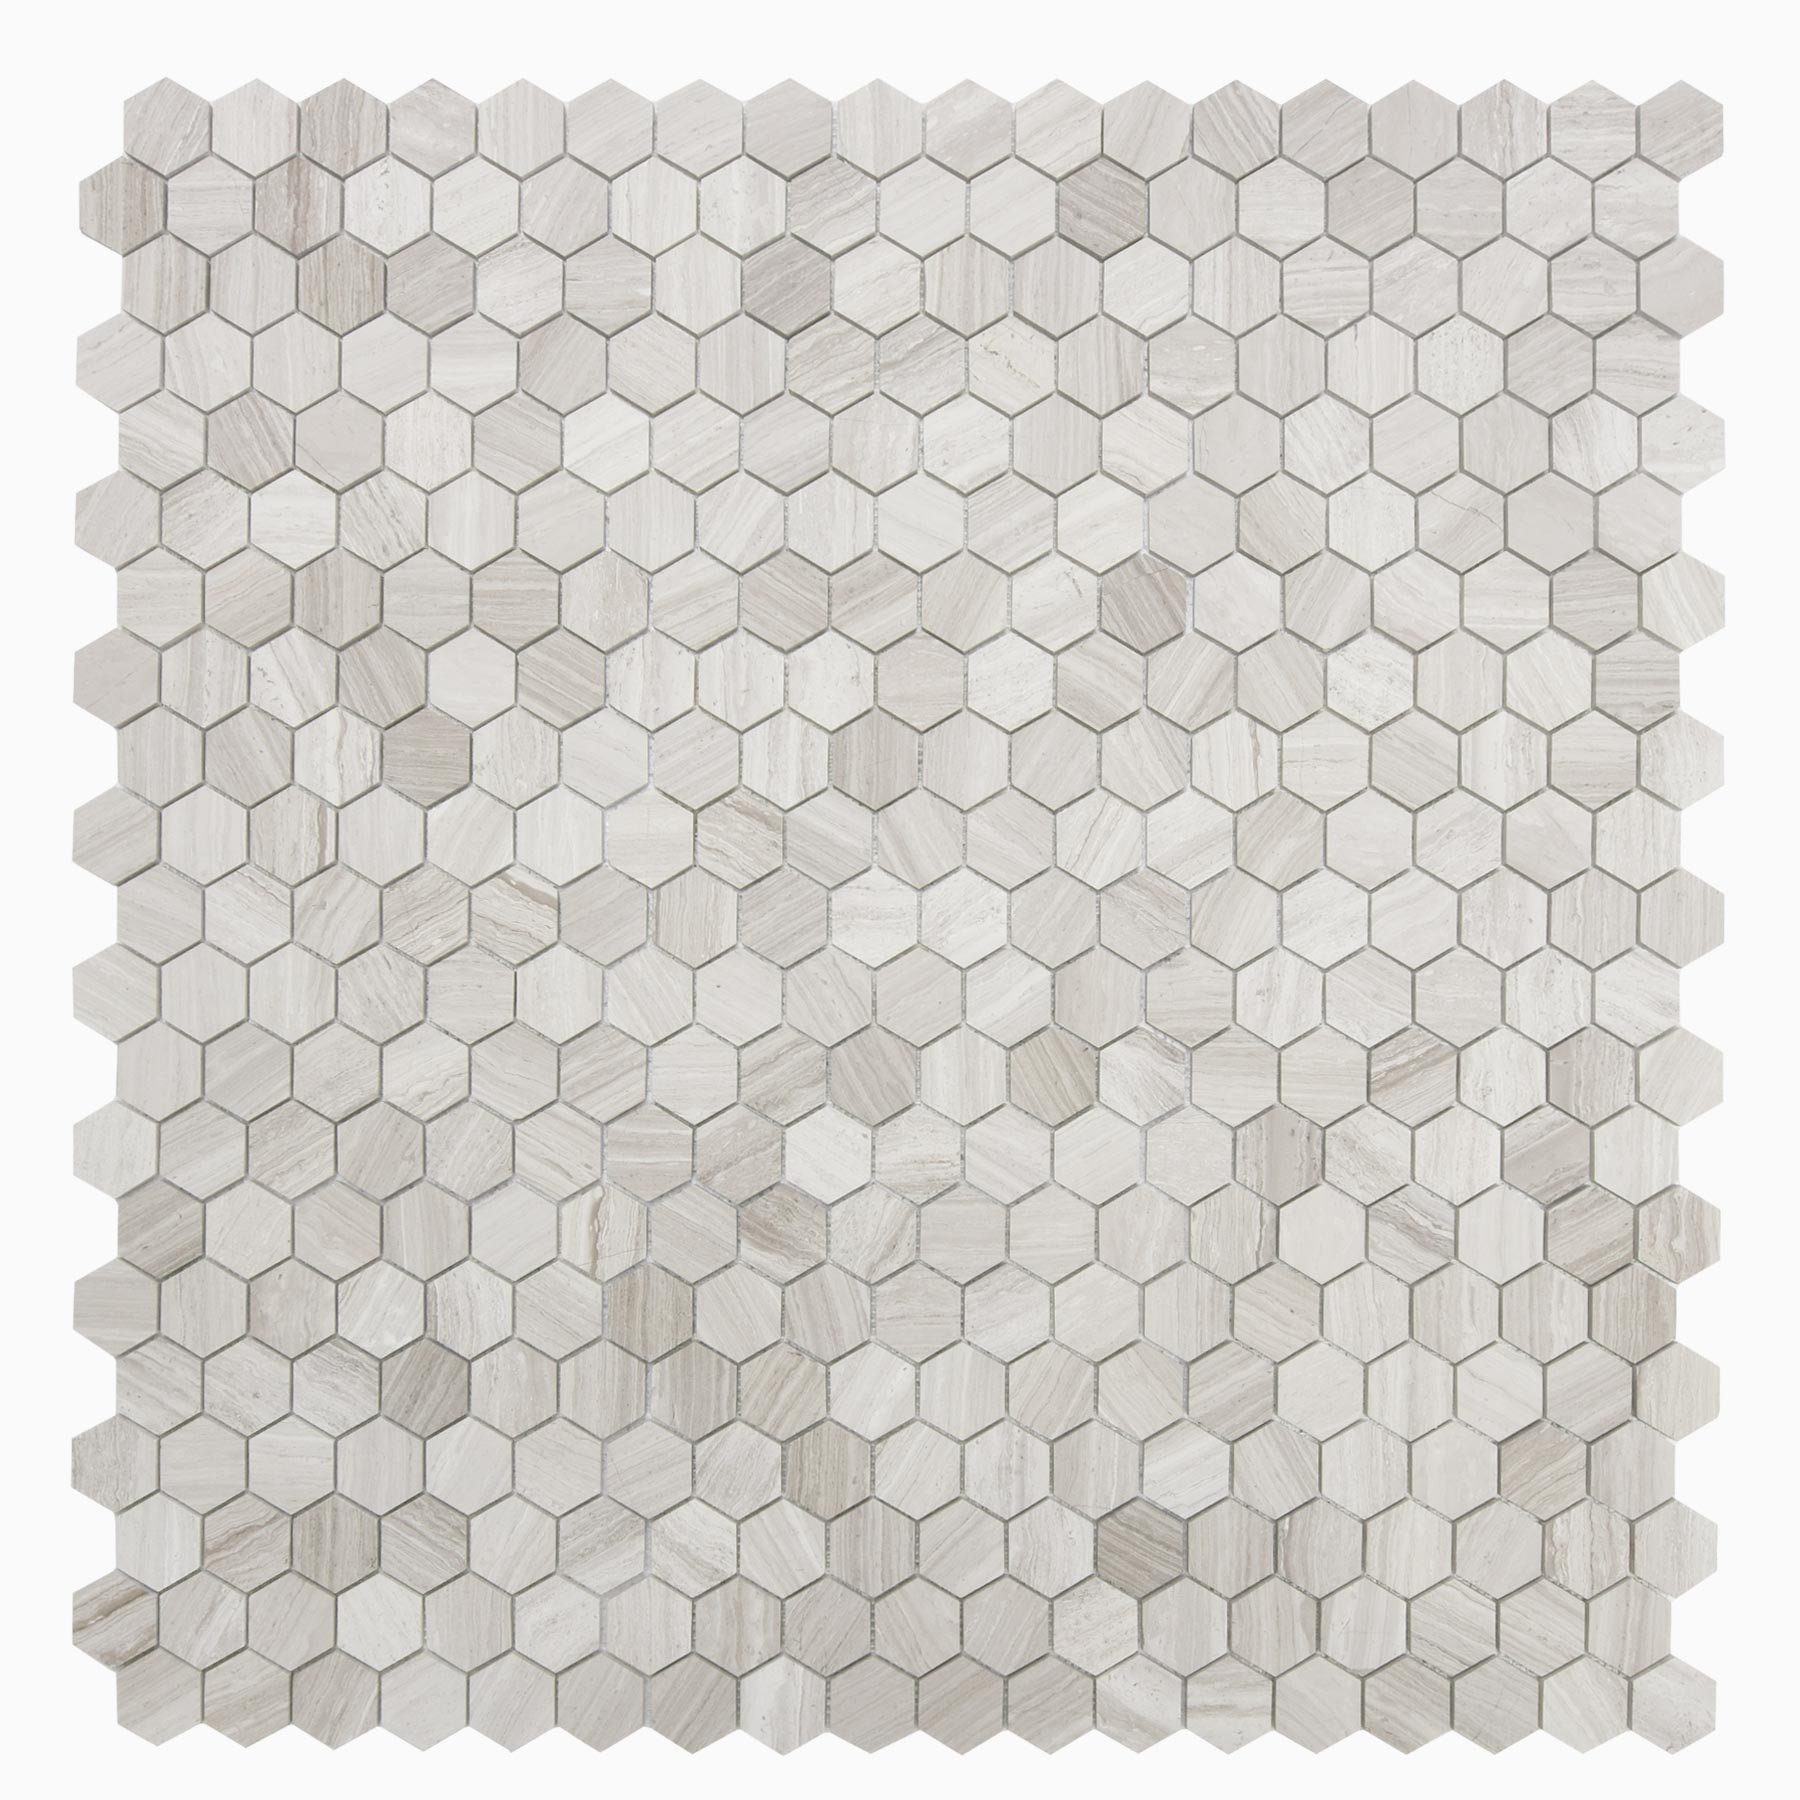 hexagon Mosaic White natural Wooden Marble 305*305mm